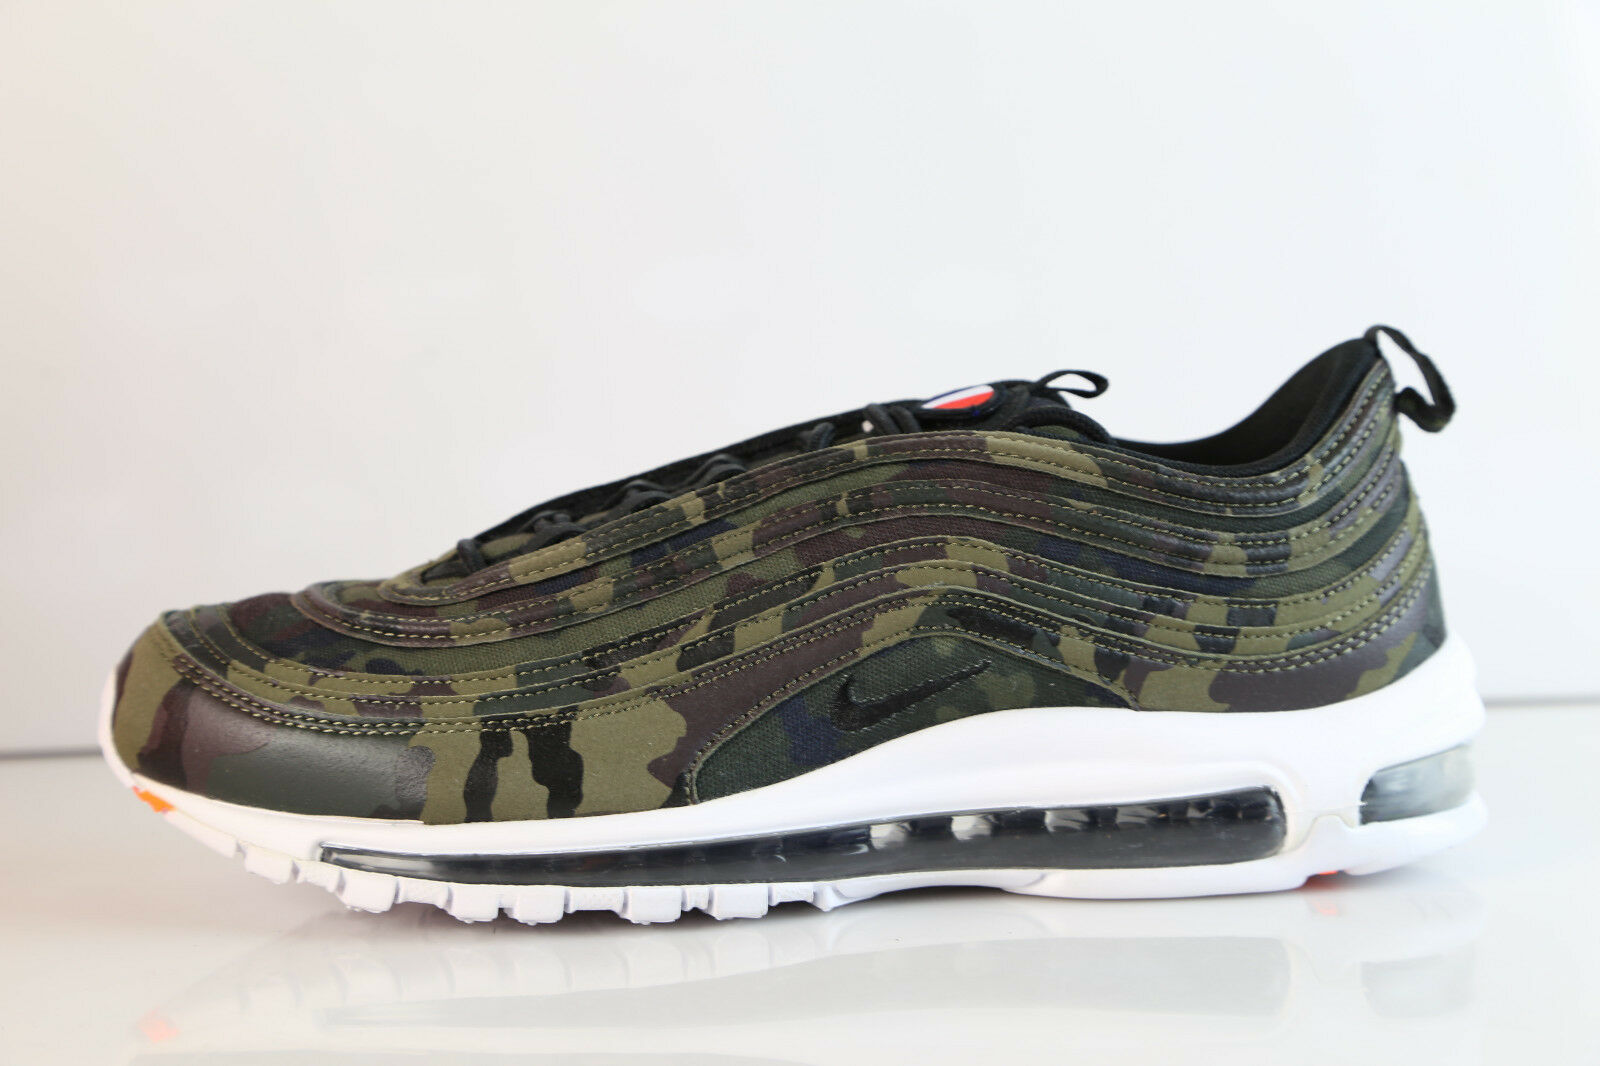 Nike Air Max 97 Premium QS Camo France Medium Olive AJ2614-200 9-13 prm 1 Wild casual shoes